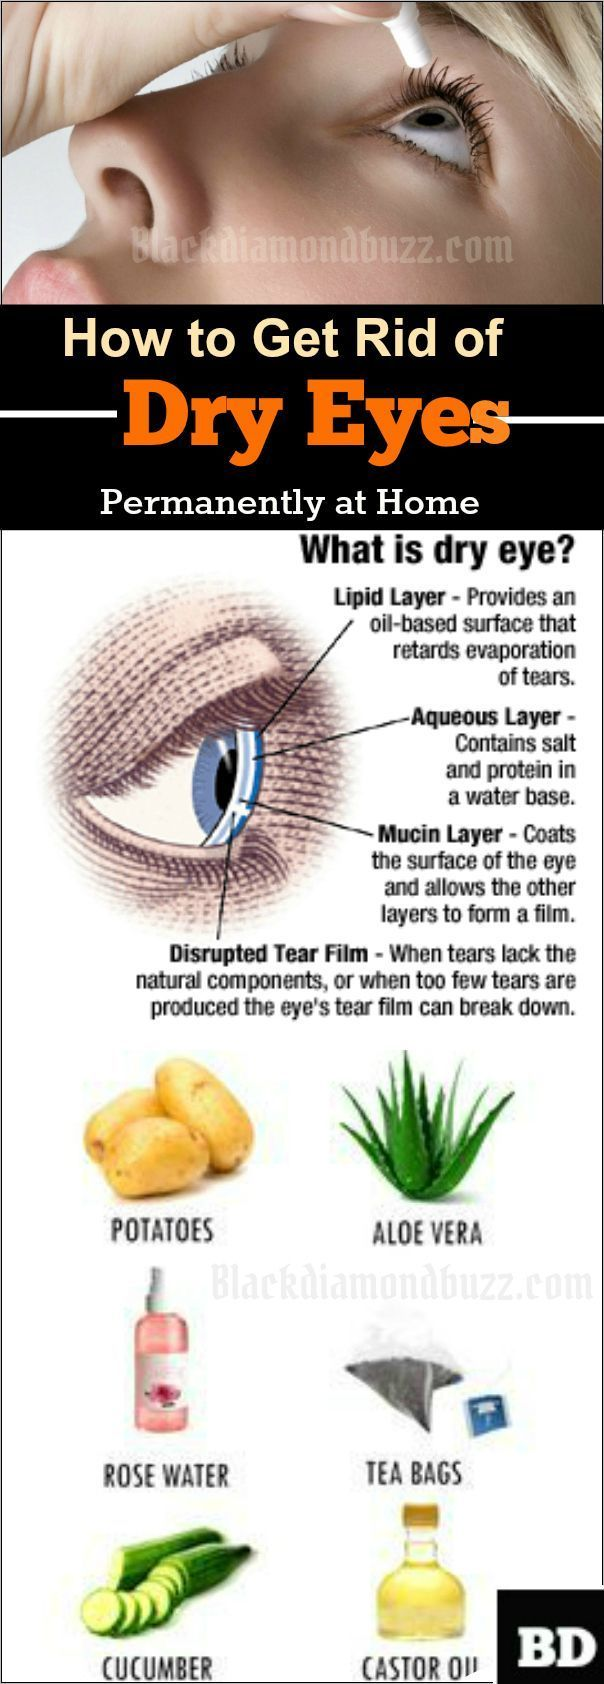 Dry Eyes Remedies- Do you want to fix your dry eyes and cure it naturally?Here are best home remedies for dry eyes relief at home.These natural treatments for dry eyes will get rid of dry eyes permanently and you will be relieved from dry eyes symptoms.